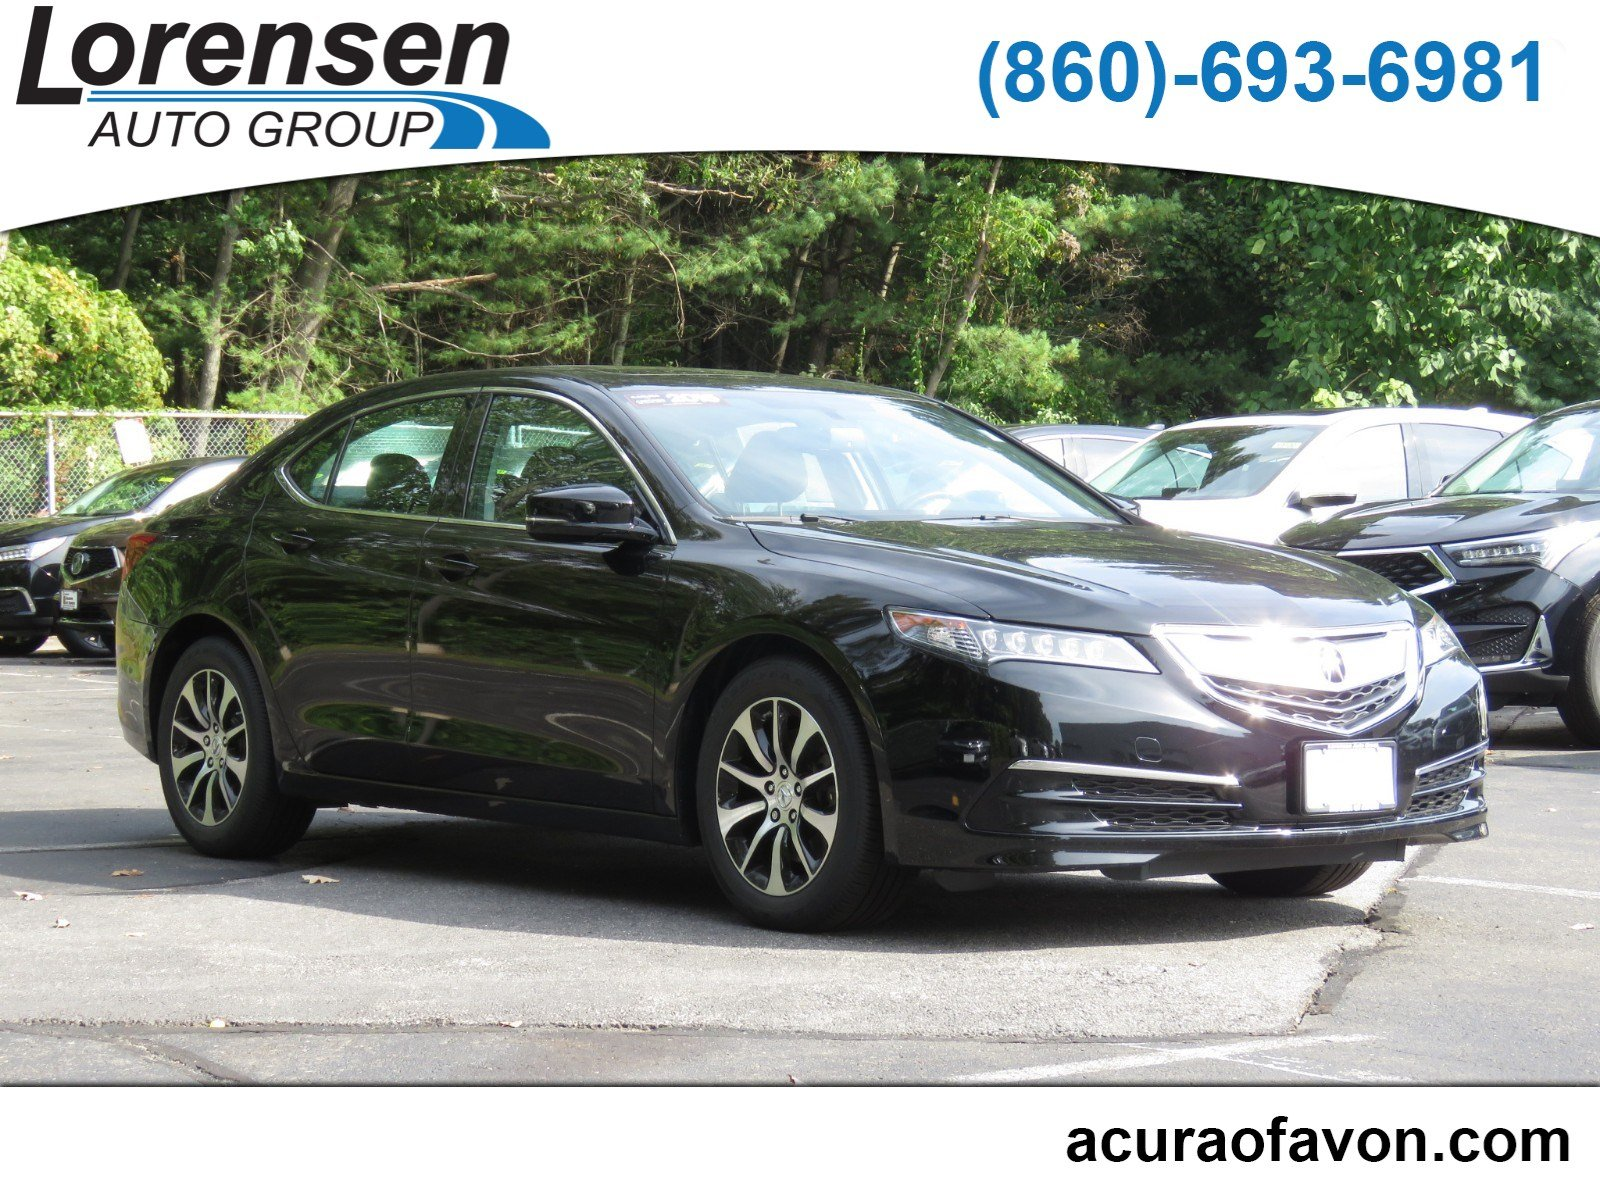 Pre Owned 2015 Acura TLX 4dr Sdn FWD 4dr Car in Westbrook 4103